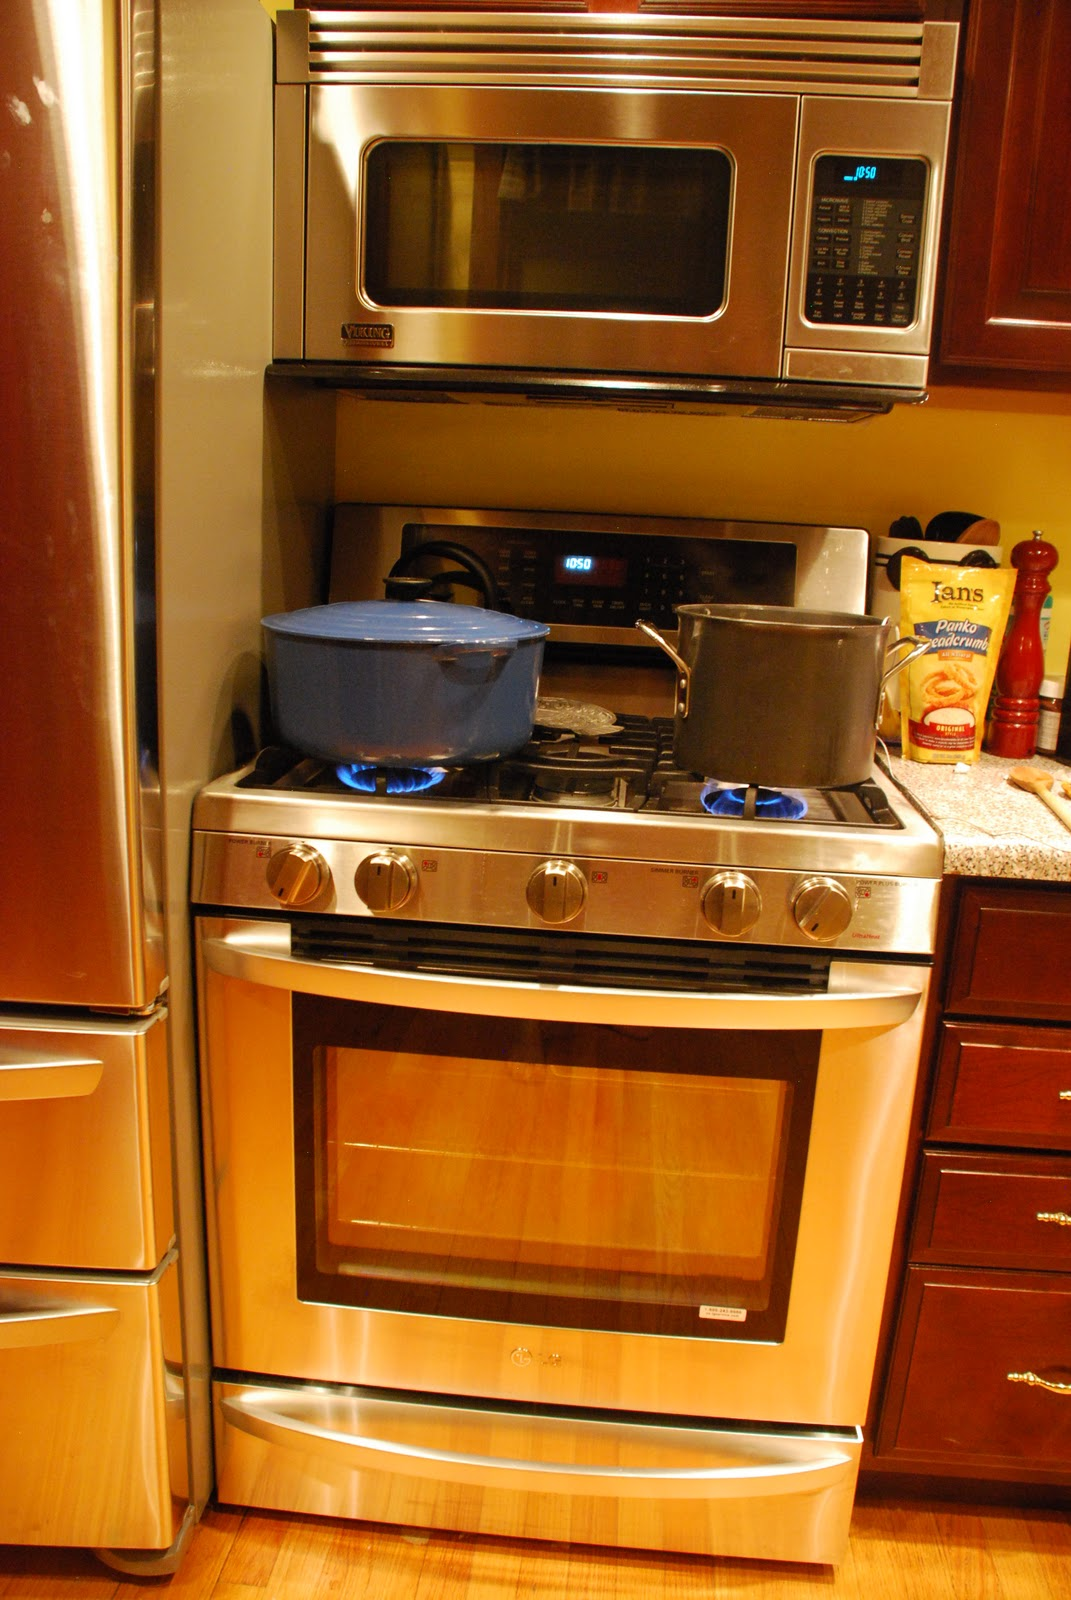 My Dream Kitchen Fashionandstylepolice: >Building My Dream Kitchen, One Chunk At A Time